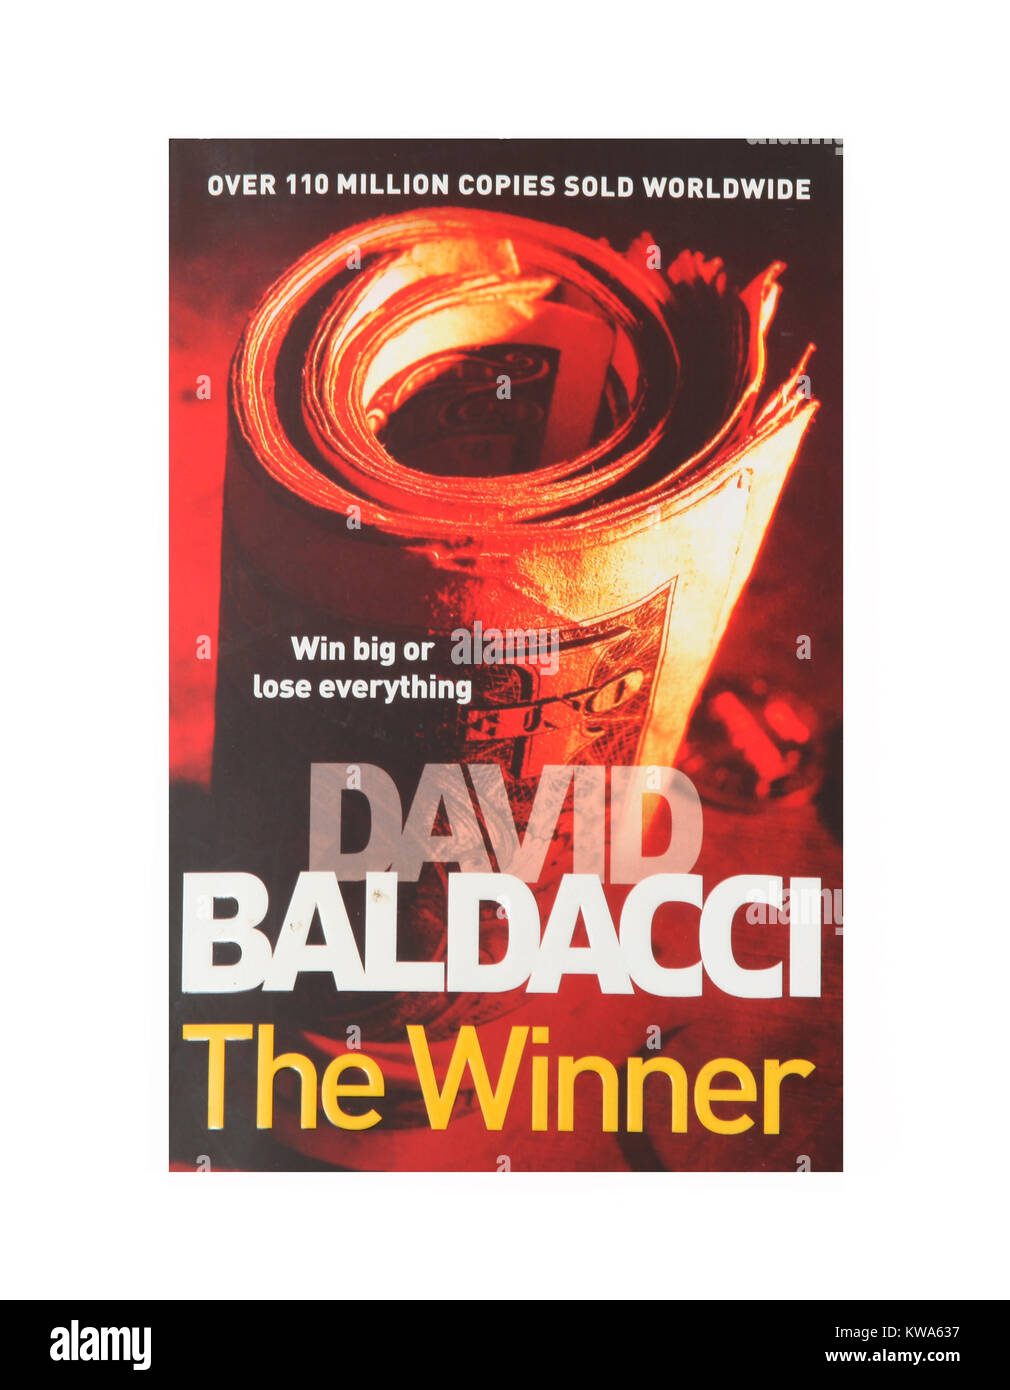 The book, The Winner by David Baldacci - Stock Image